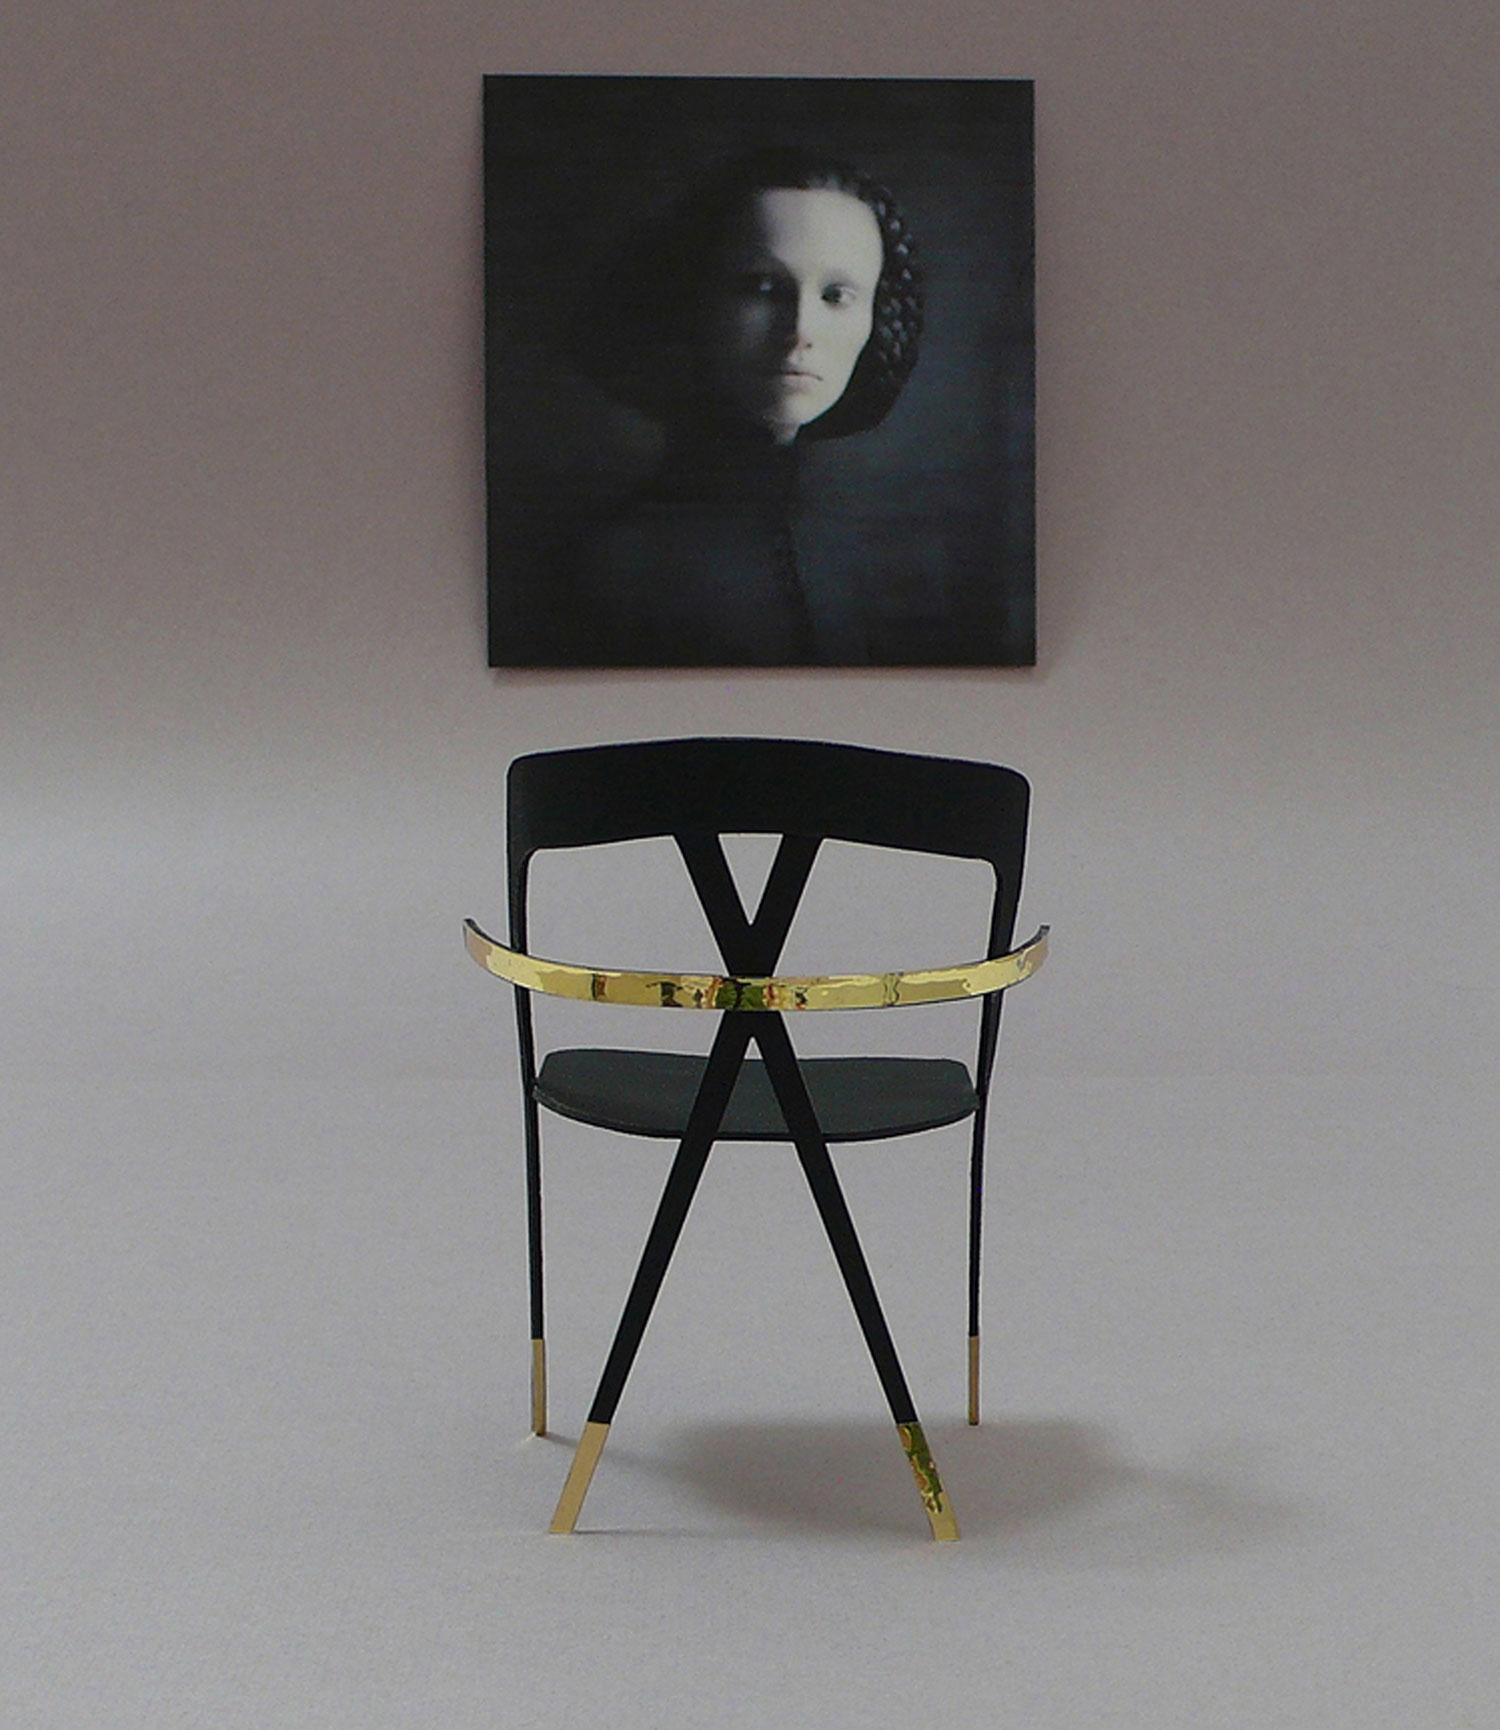 x-federation-chair-by-victor-vetterlein-yellowtrace-05_1_01